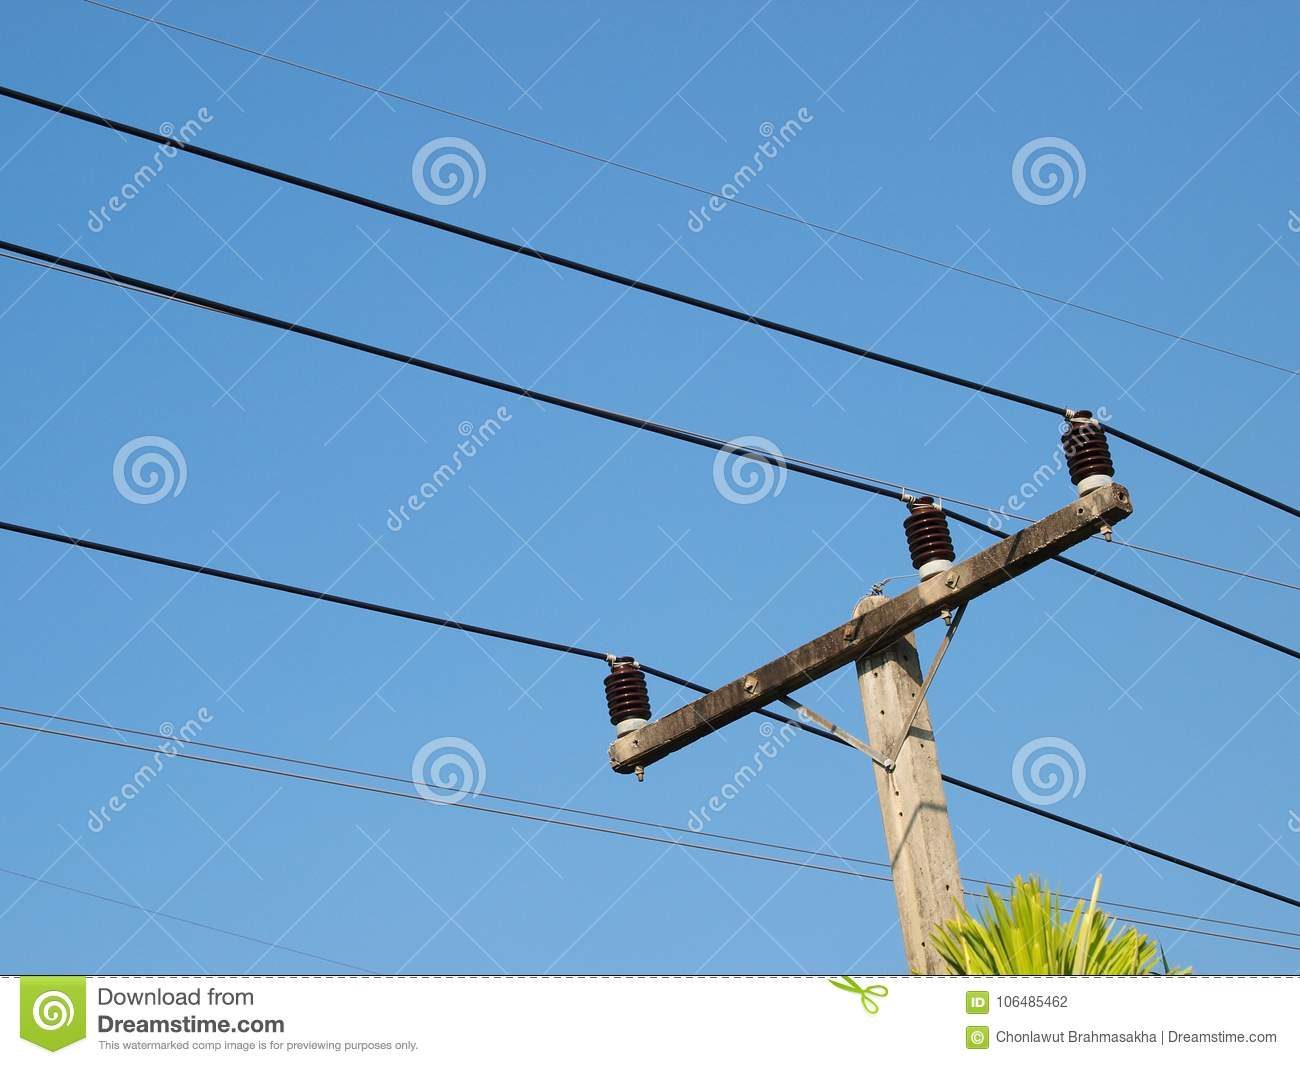 hight resolution of three phase power electricity lines installed on top of concrete pole with ceramic isolators blue sky background